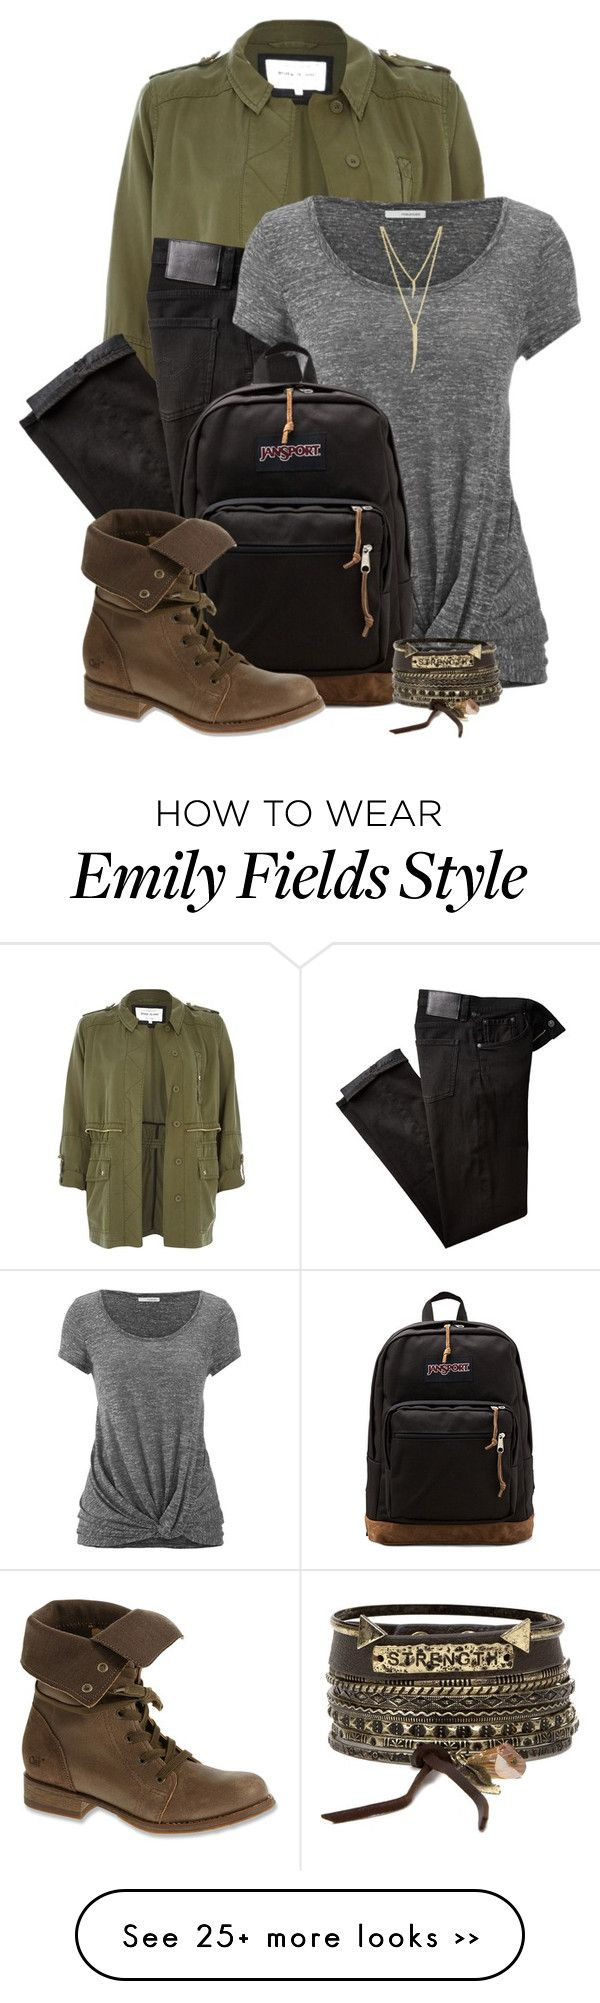 """emily fields"" by alexa-girl2 on Polyvore"